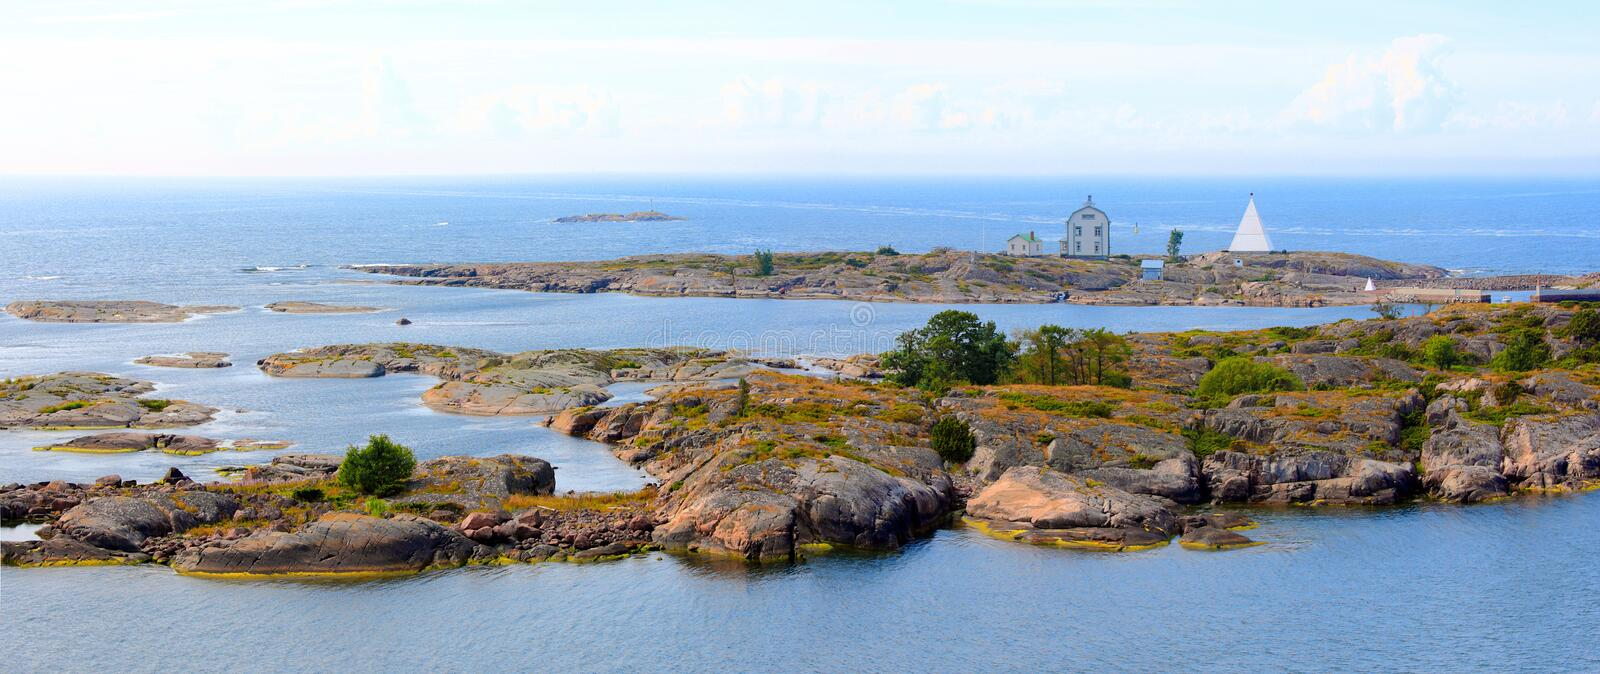 Aland Islands archipelago, Kobba Klintar, panorama. Aland archipelago with its tiny rocky islands. One of these is Kobba Klintar, an old pilot station on sea stock images